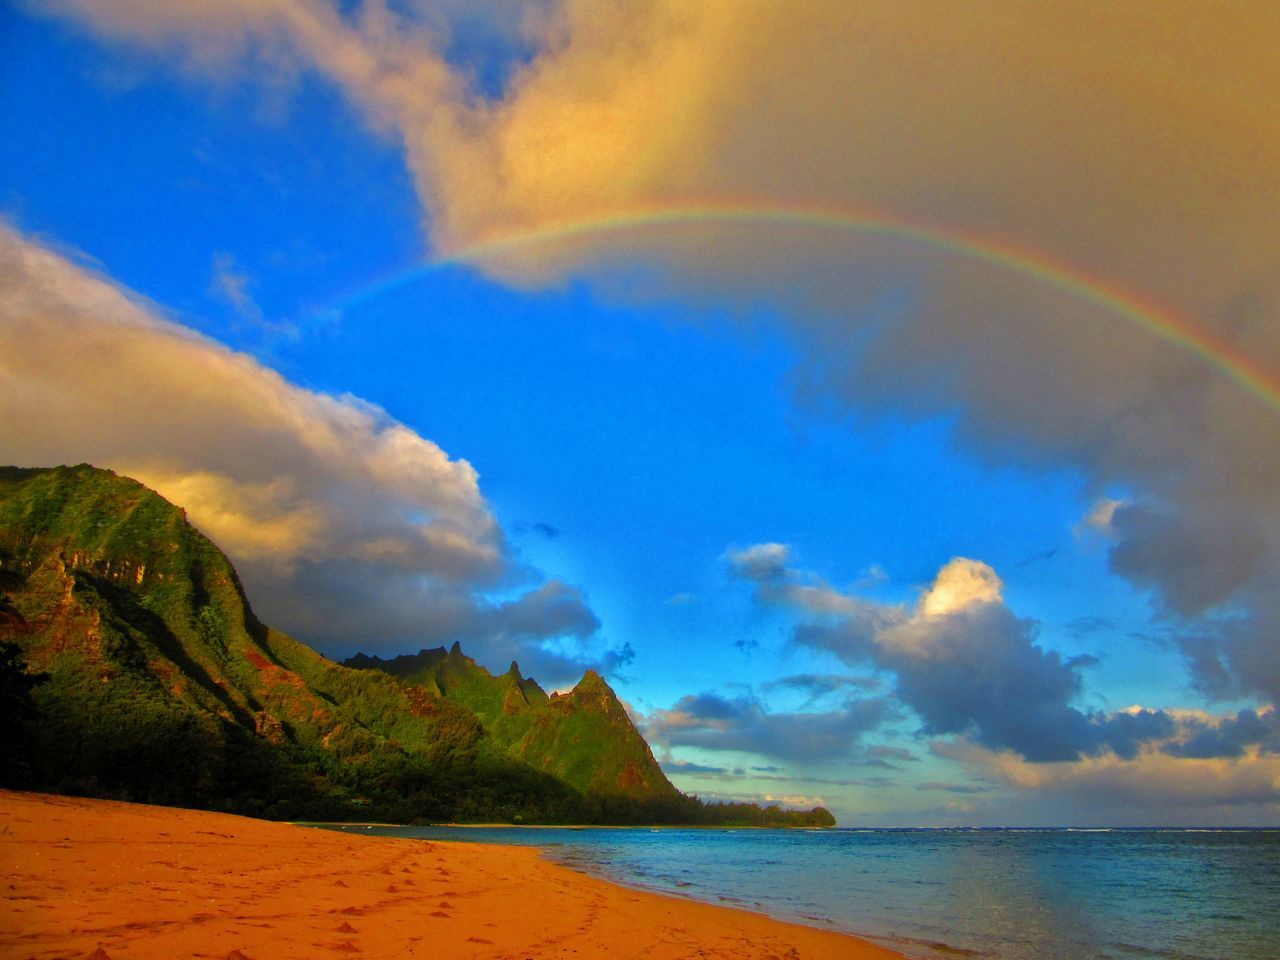 Beauty In Nature Cloud - Sky Day Haena Kauai Kauai Hawaii Kauai♡ Landscape Makua Mountain Nature No People Ocean Outdoors Scenics Sea Sky Tunnels Beach Water